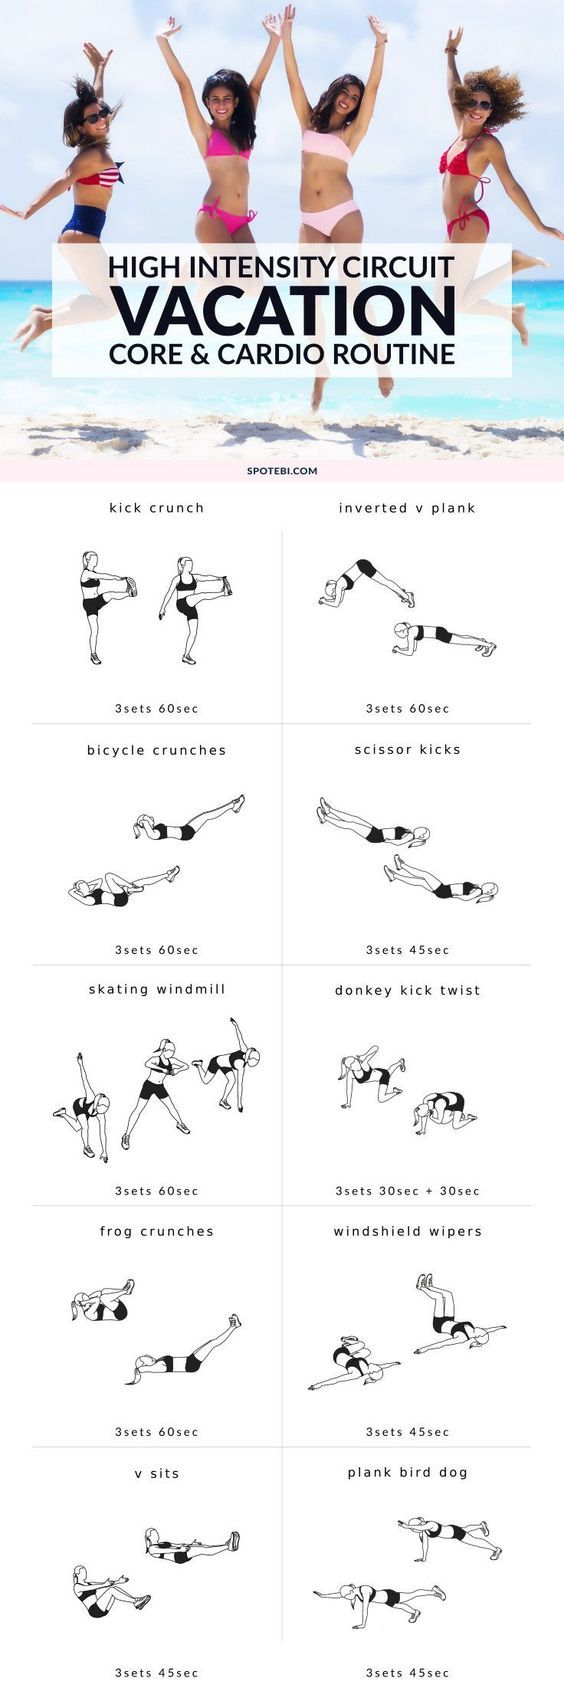 63 Best Health And Fitness Images On Pinterest Workouts Bikini How Do You Create Your Circuit Board Design With Routine Dullness Get Tummy Slim Tight While Vacation This No Equipment High